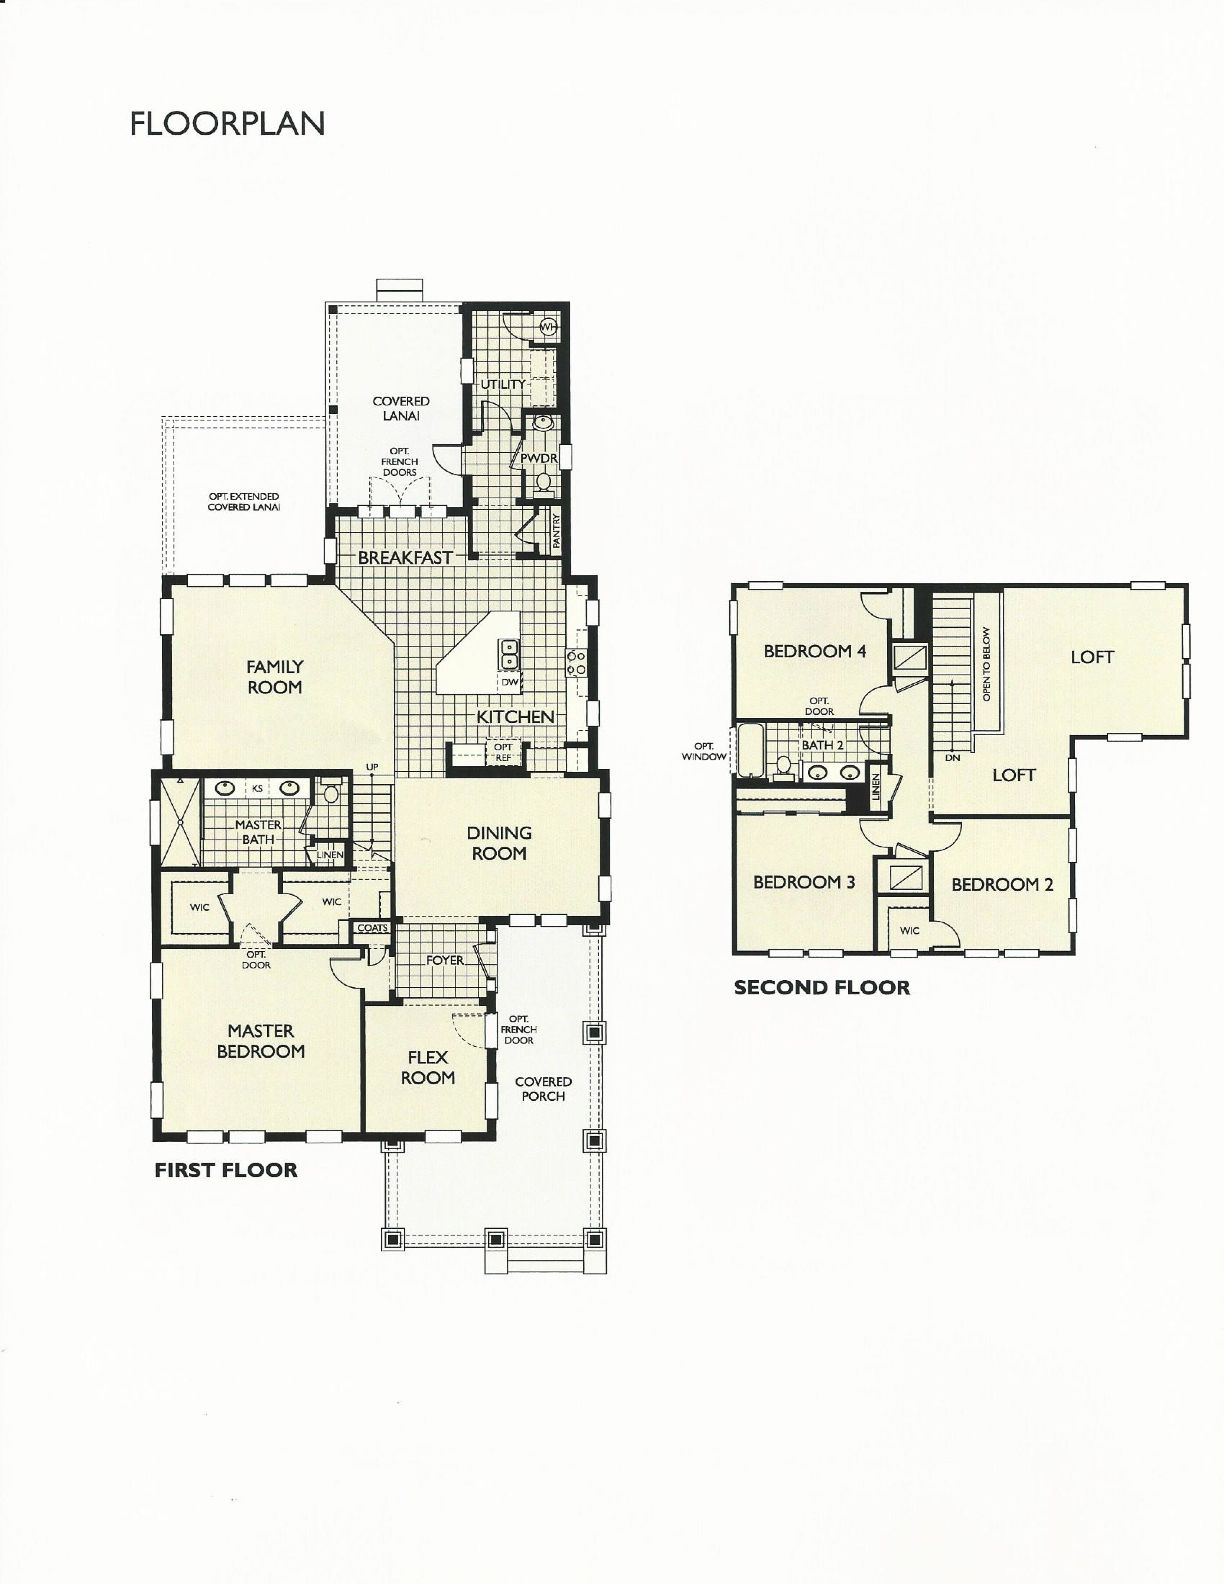 oakland park overcup floor plan in winter garden fl oakland park